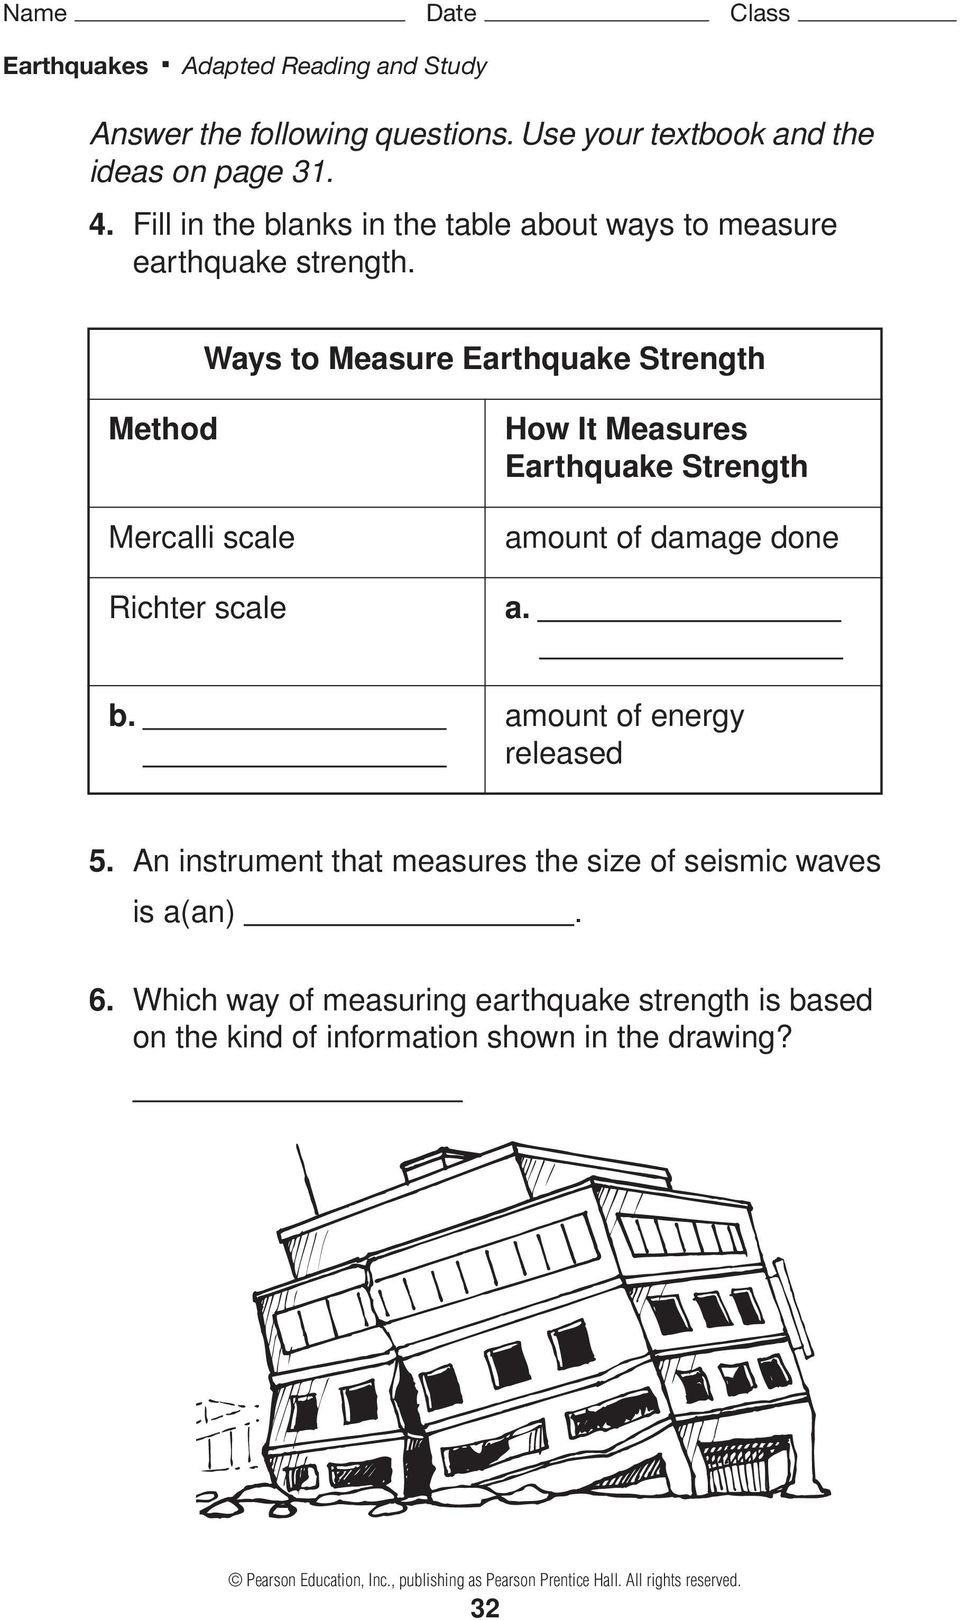 Earthquake Worksheet Pdf Earthquakes and Seismic Waves Pages 51 57 Pdf Free Download